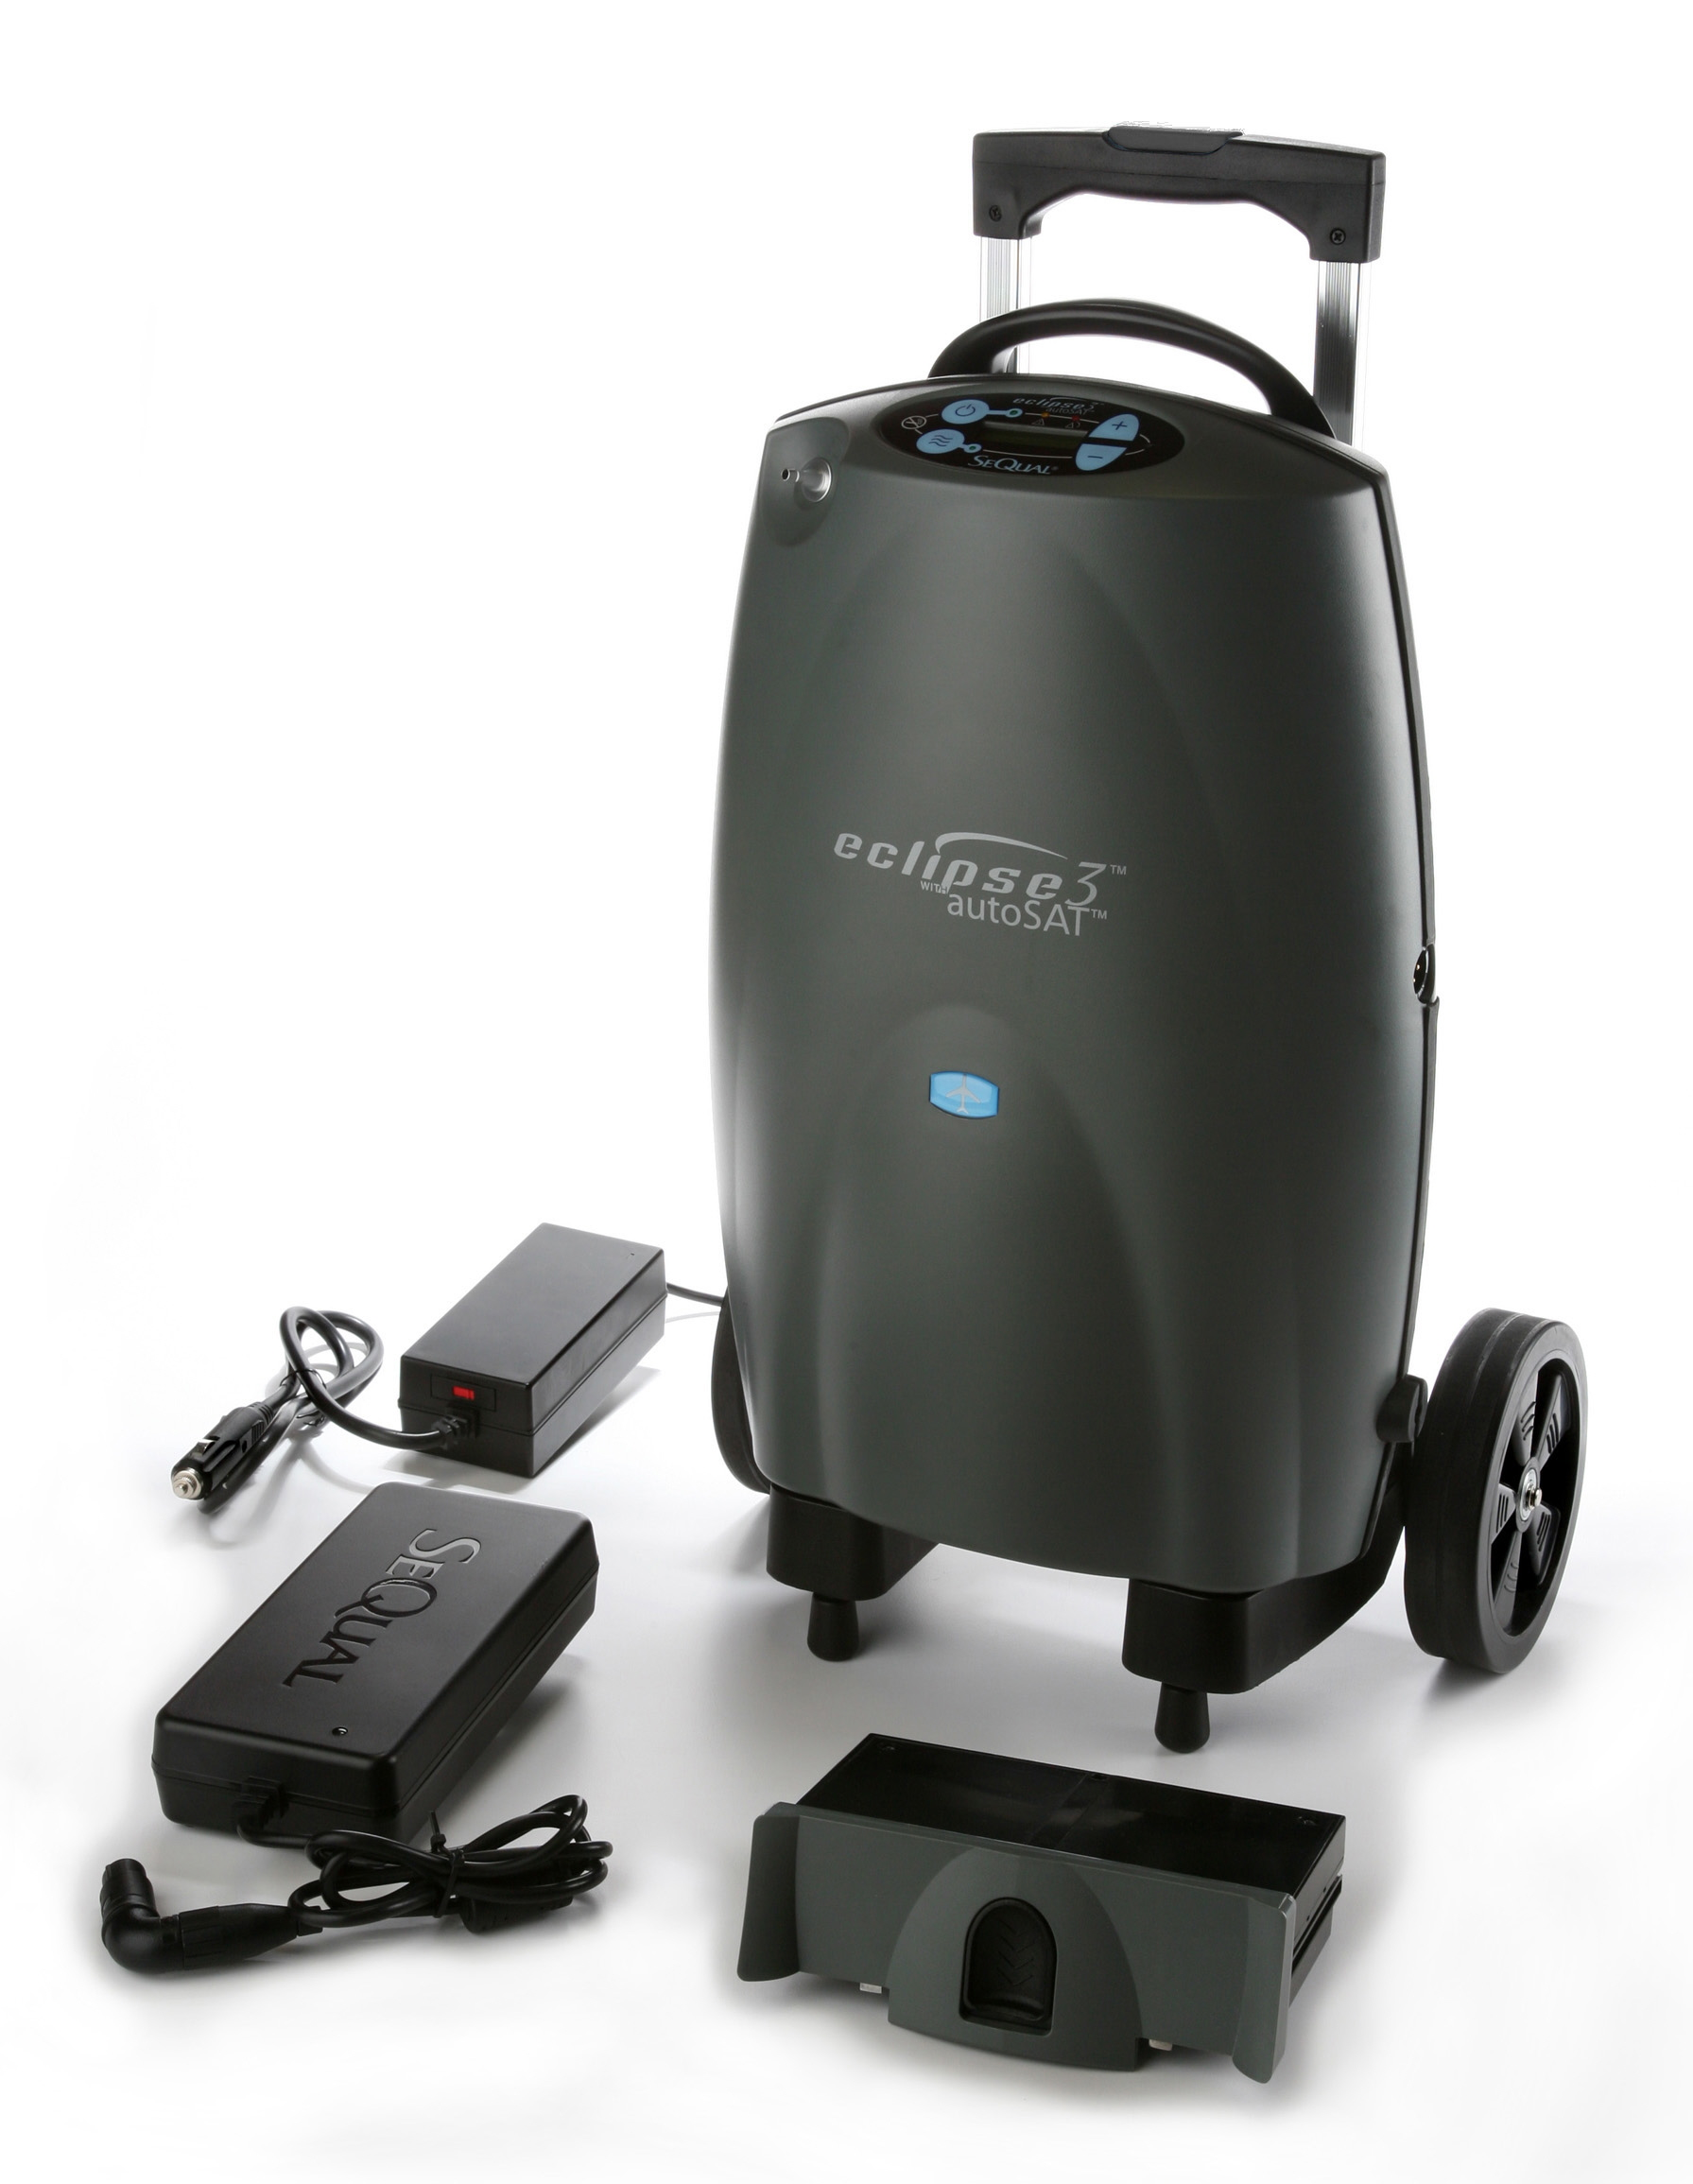 Eclipse 3 Portable Oxygen Concentrator